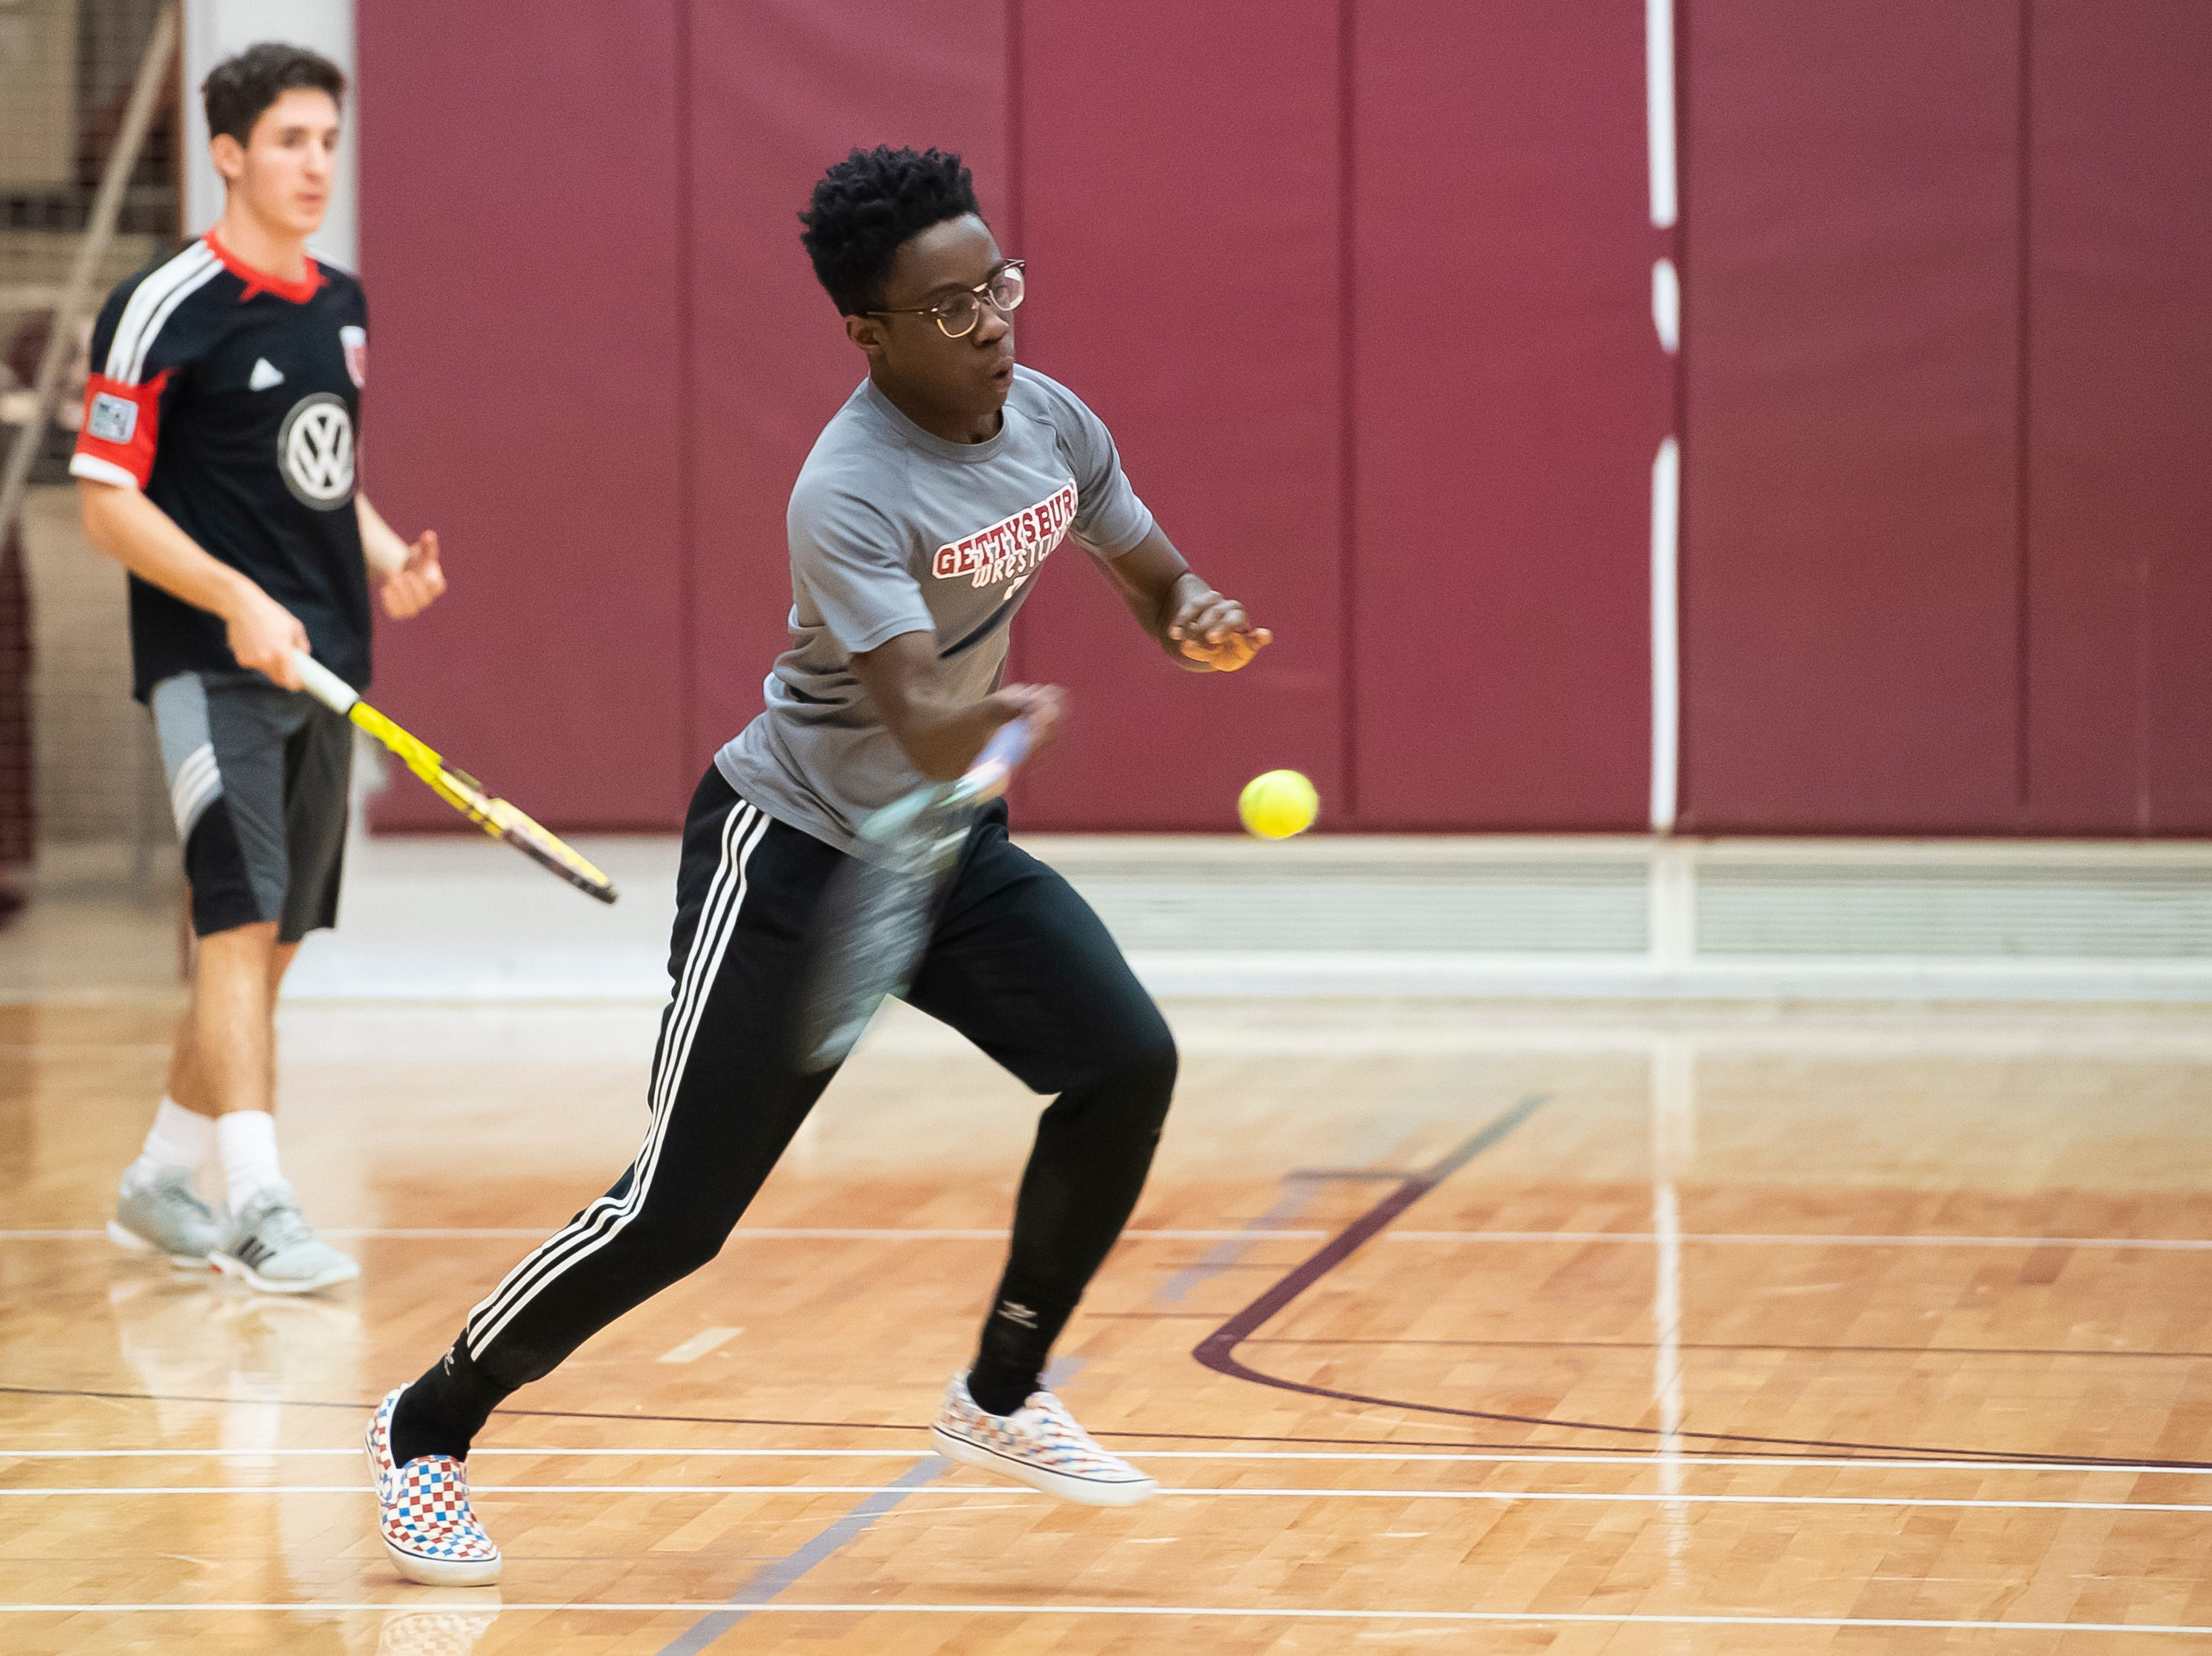 Kwaku Baryeh hits a forehand shot during a Gettysburg boys tennis drill on the first day of spring sports practice Monday, March 4, 2019.